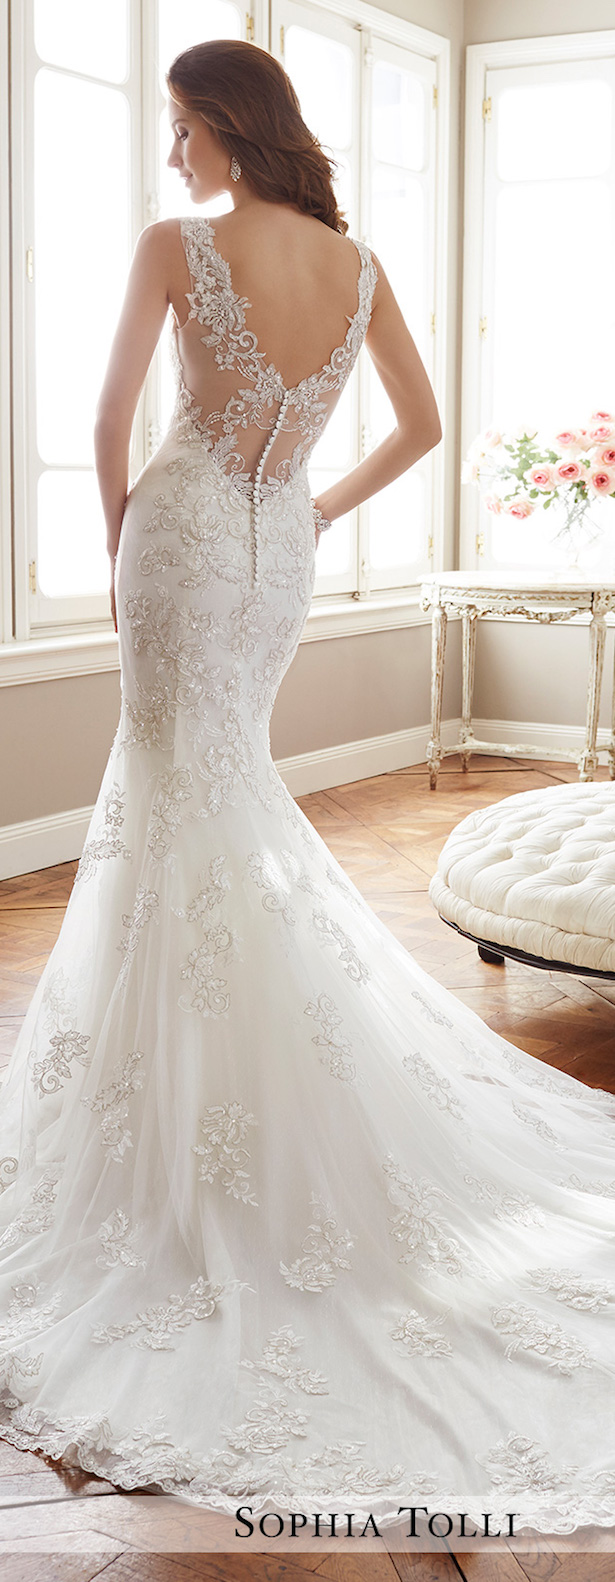 Sophia Tolli Spring 2017 Wedding Dress Collection